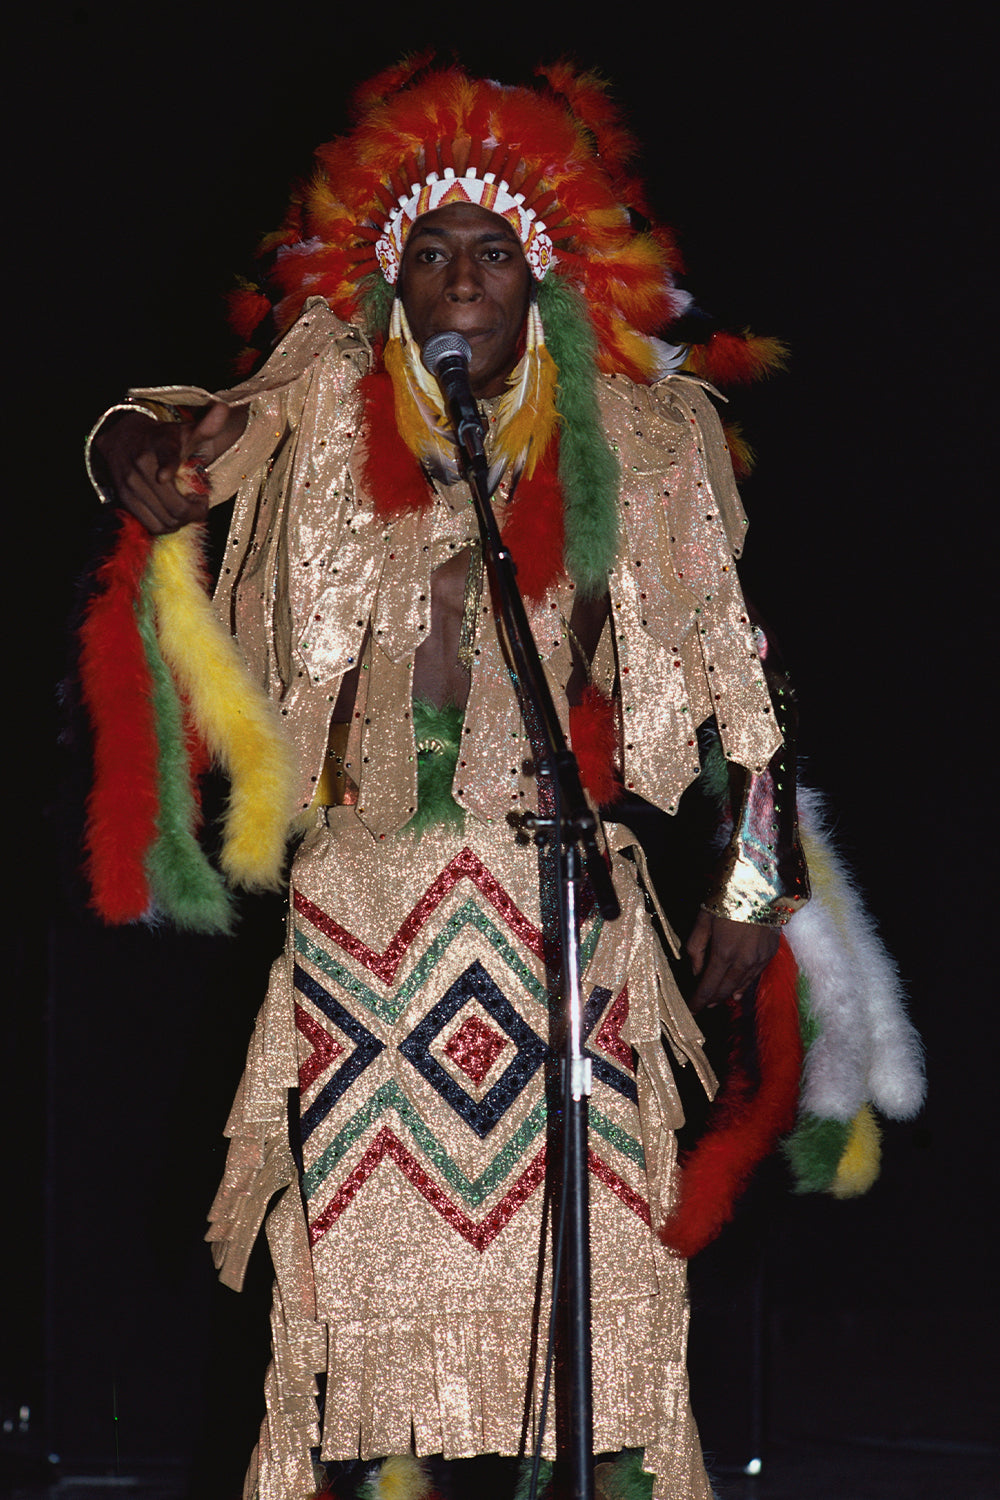 Pow Wow of Soul Sonic Force wears a Native American costume on stage. (Photo by Geoff Butler/Corbis/VCG via Getty Images)